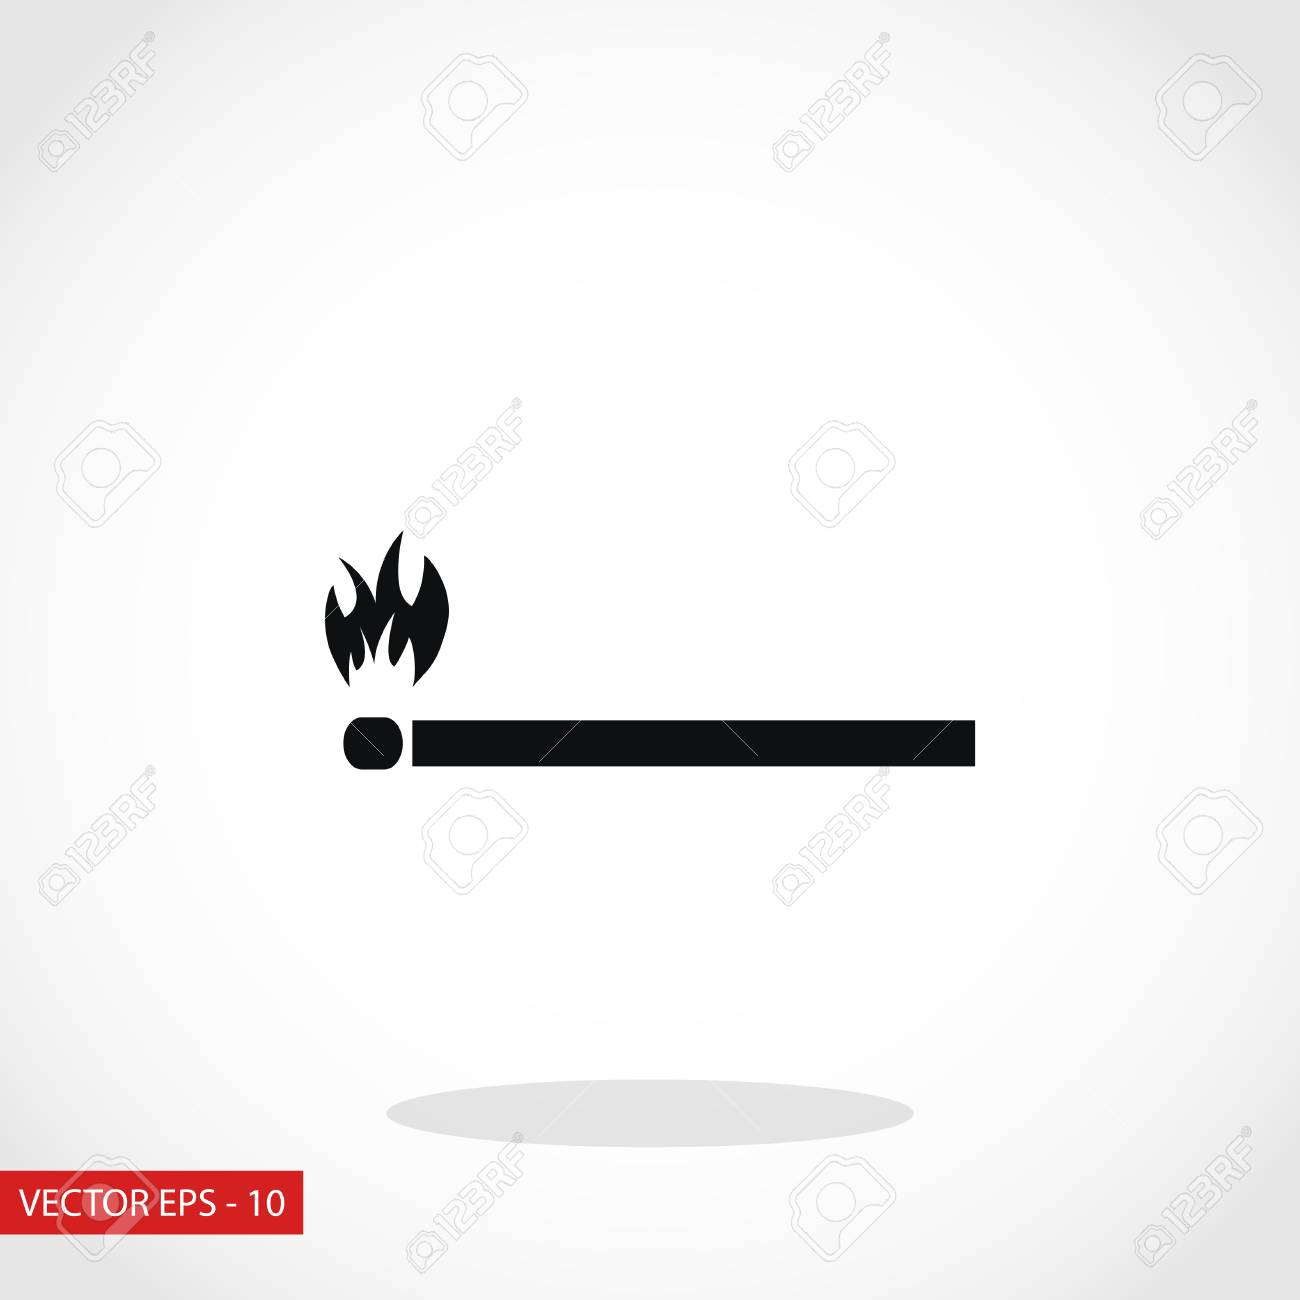 match icon vector flat design best vector icon royalty free cliparts vectors and stock illustration image 67339657 123rf com